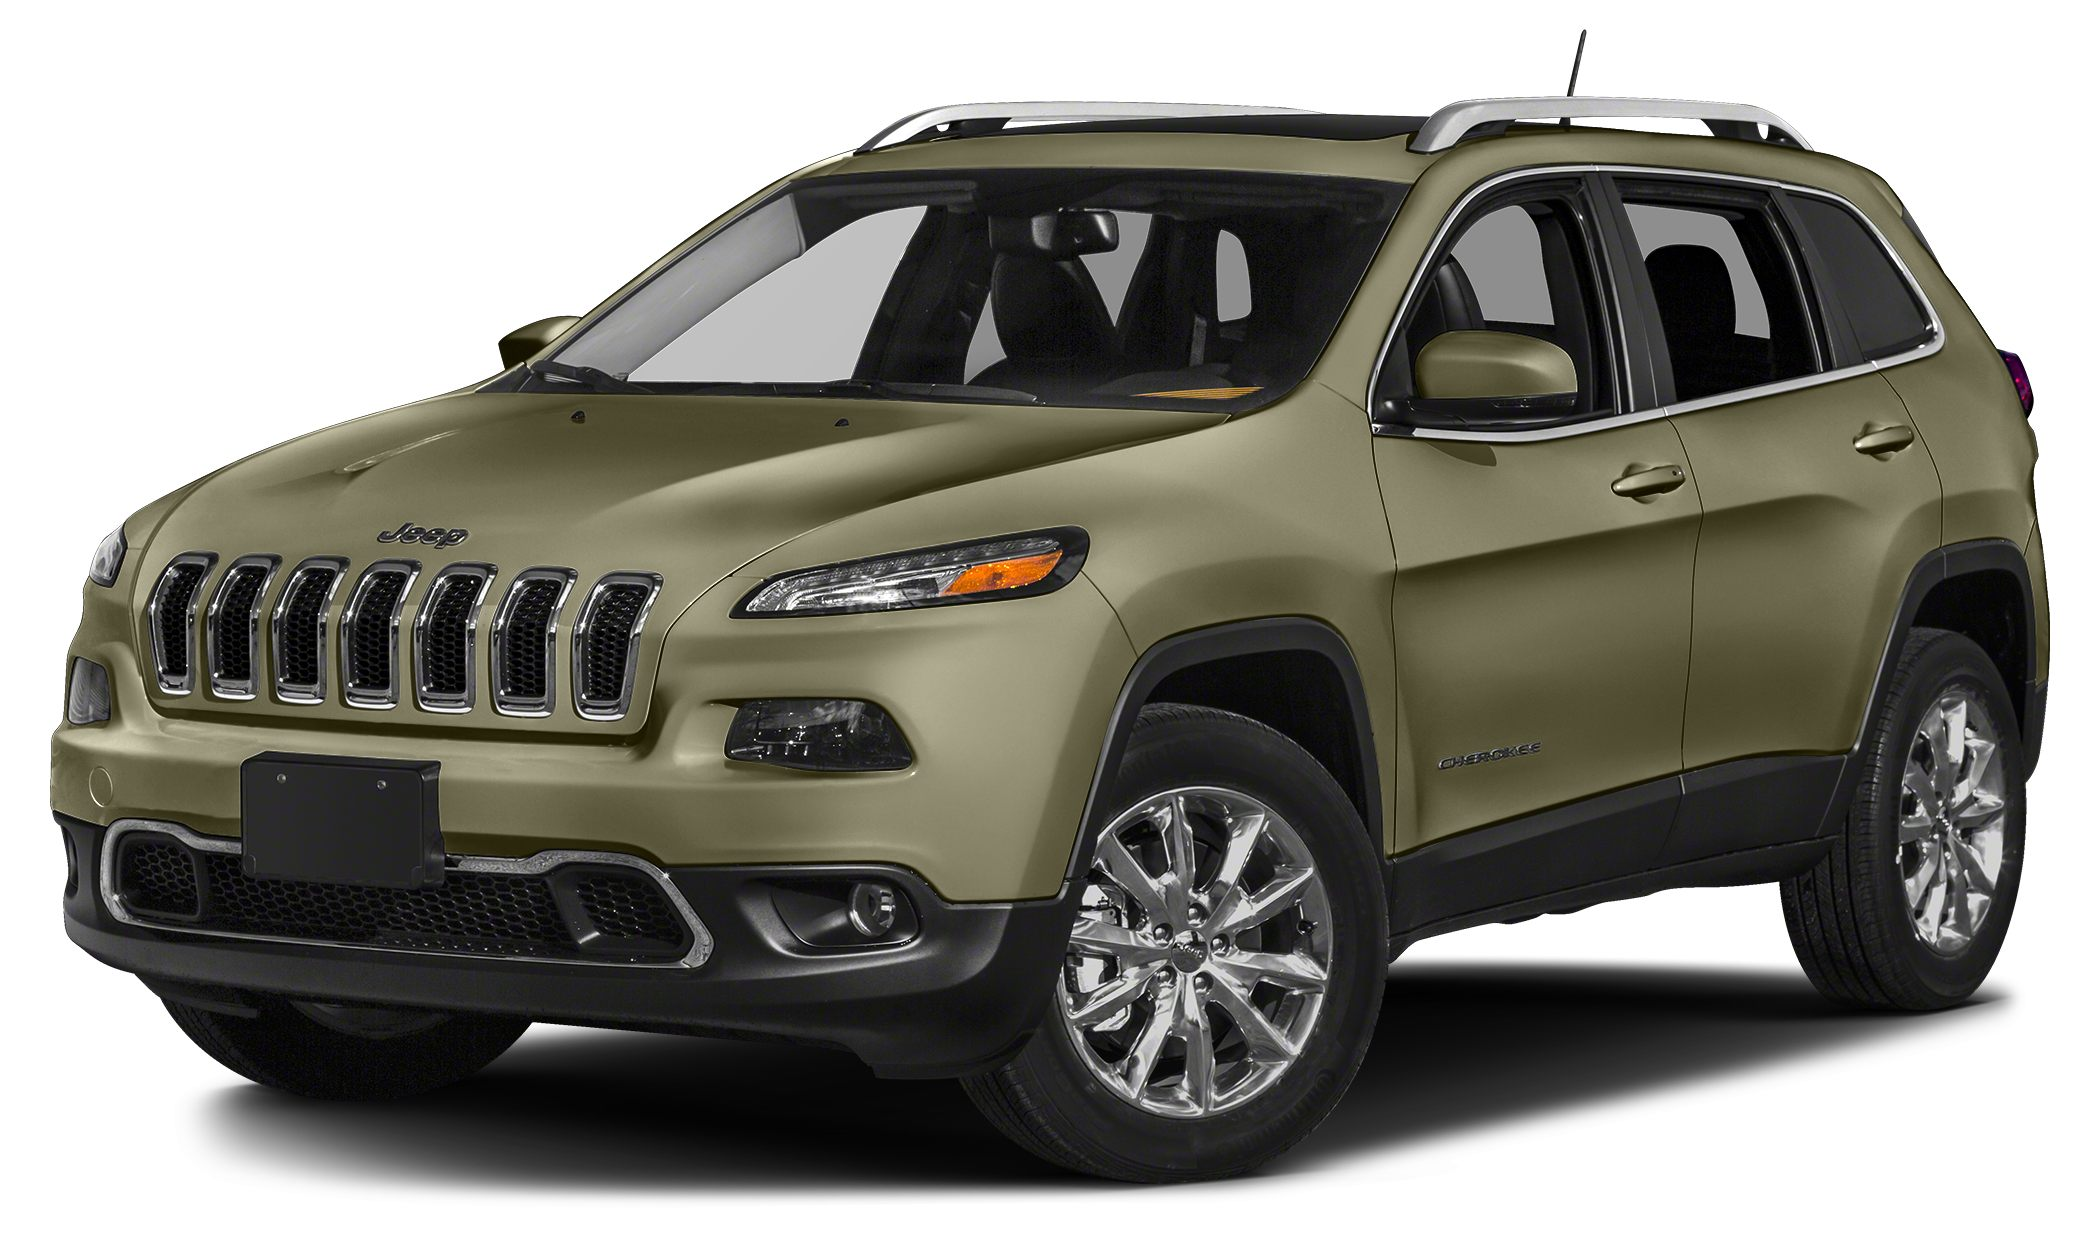 2014 Jeep Cherokee Latitude Proudly serving manatee county for over 60 years offering Cars Trucks